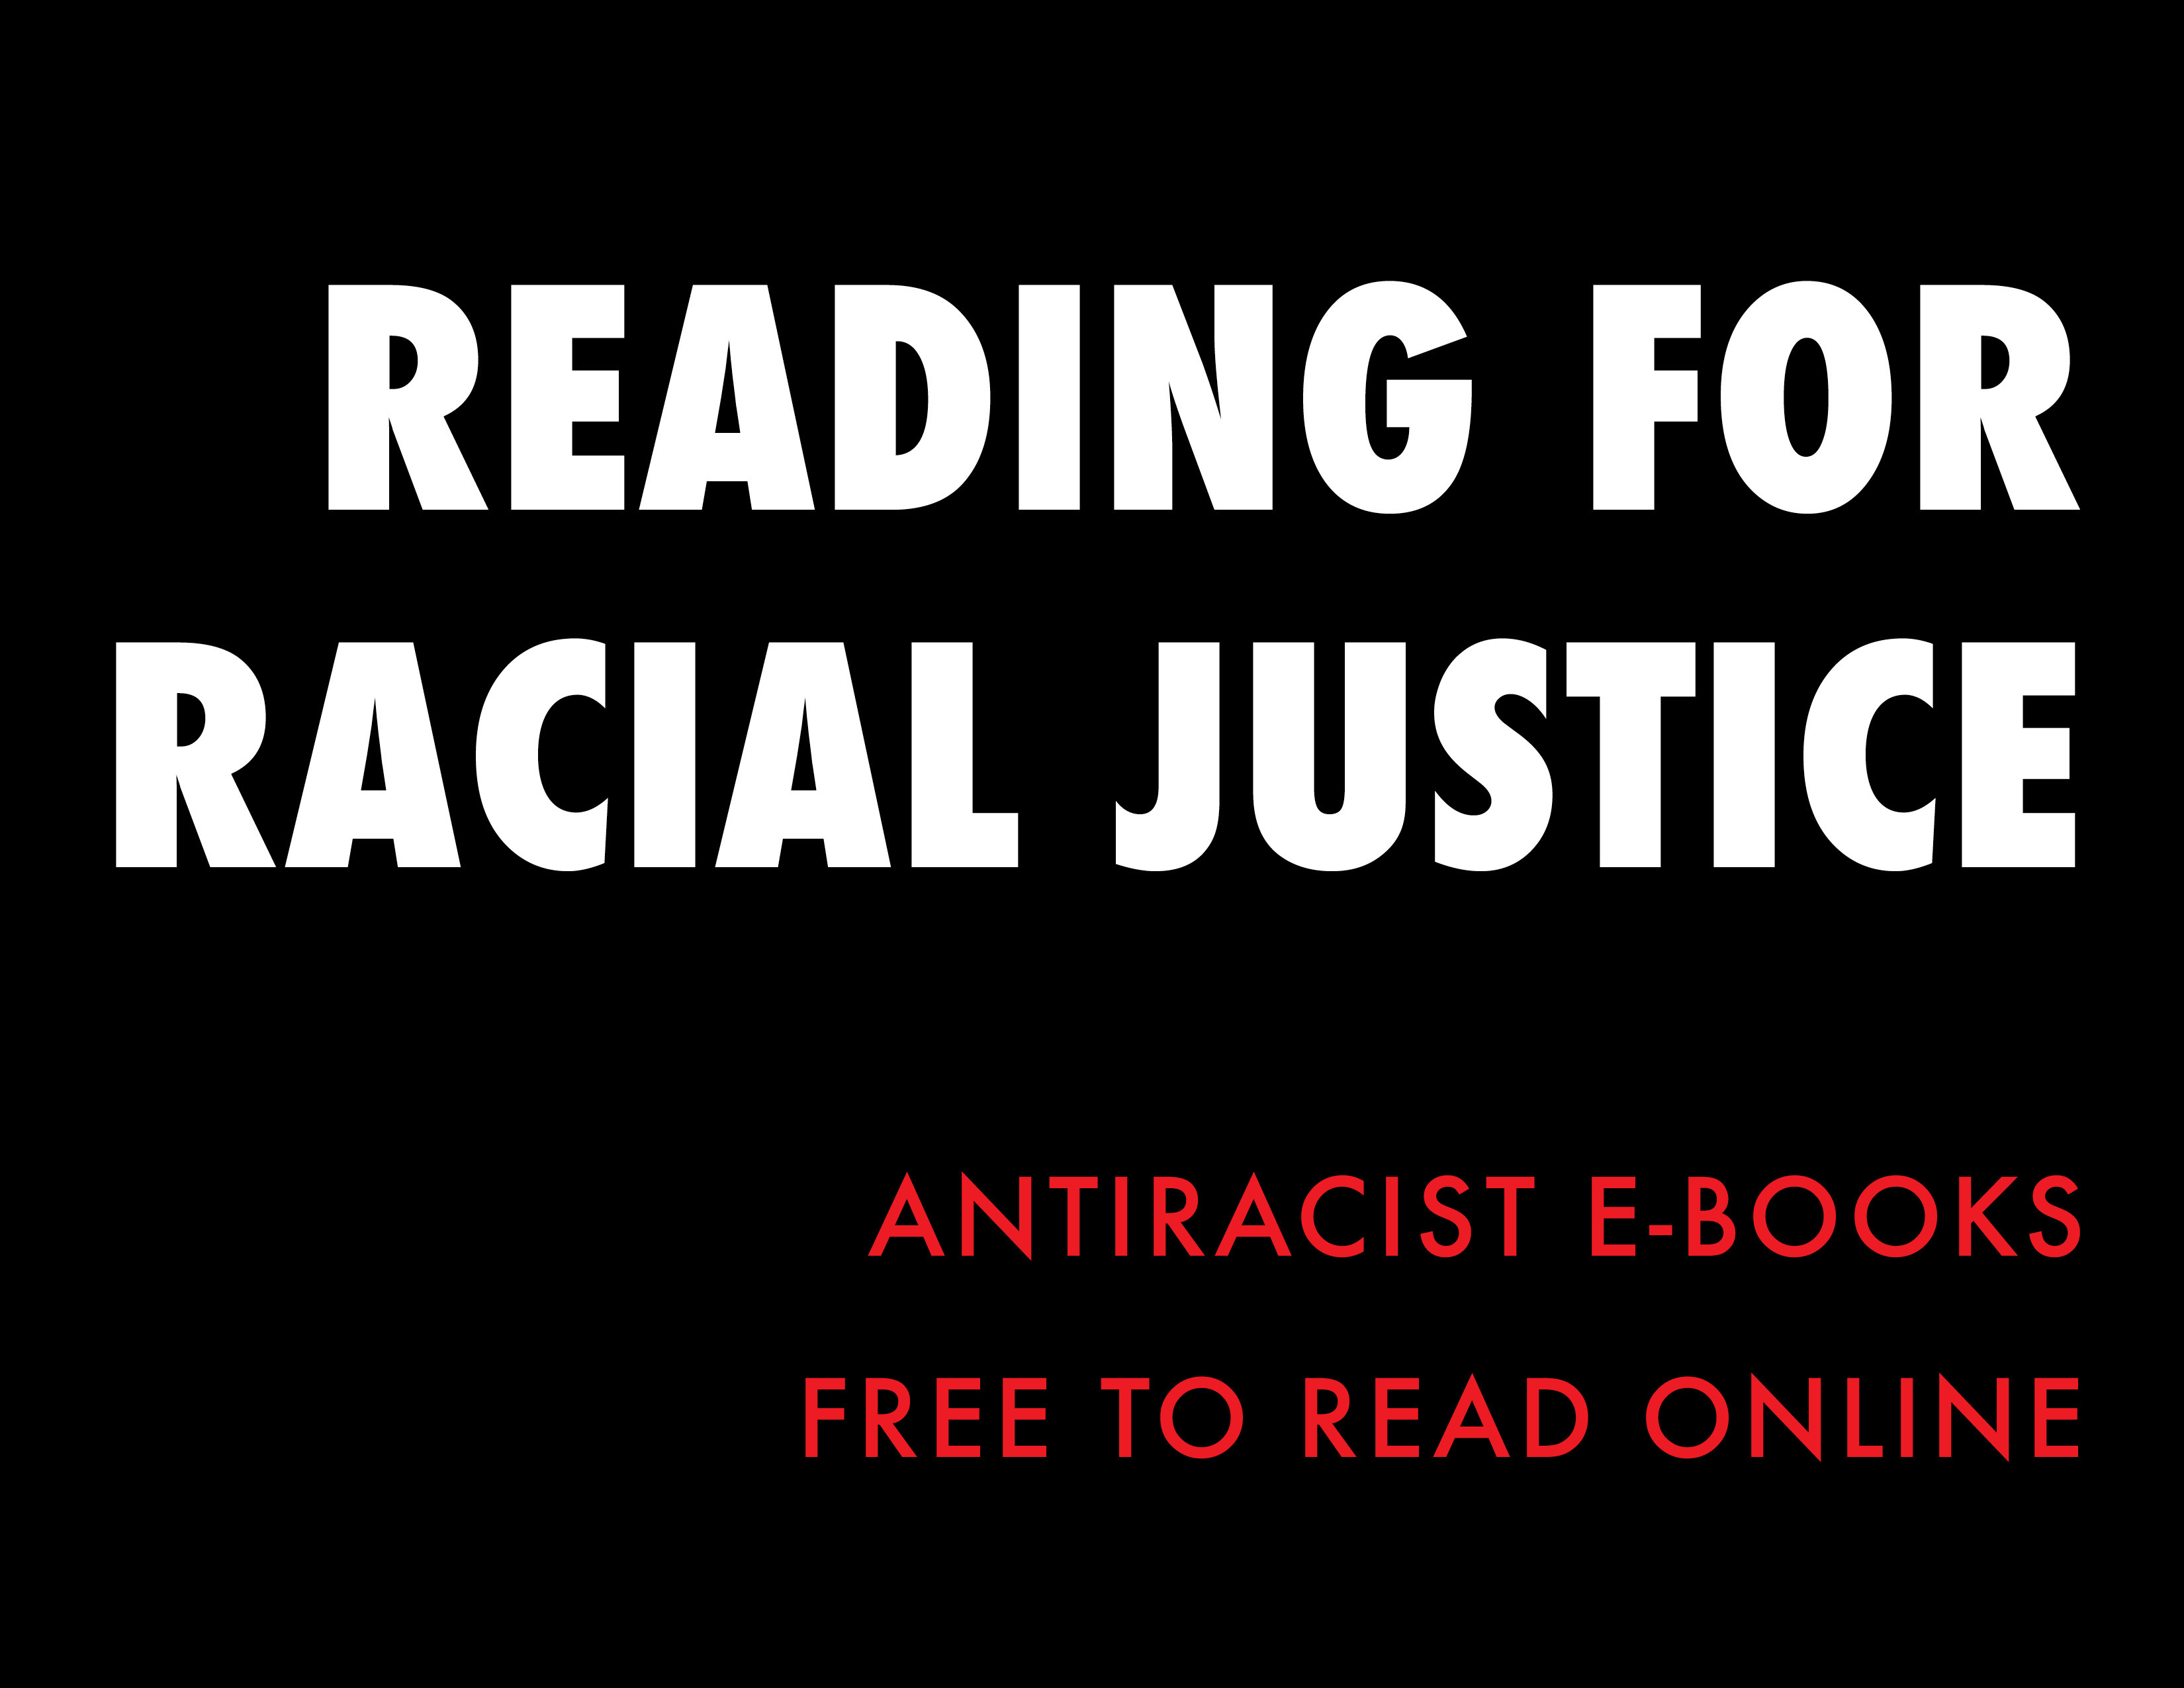 White and white text against a black background: Reading for radical justice; antiracist e-books free to read online